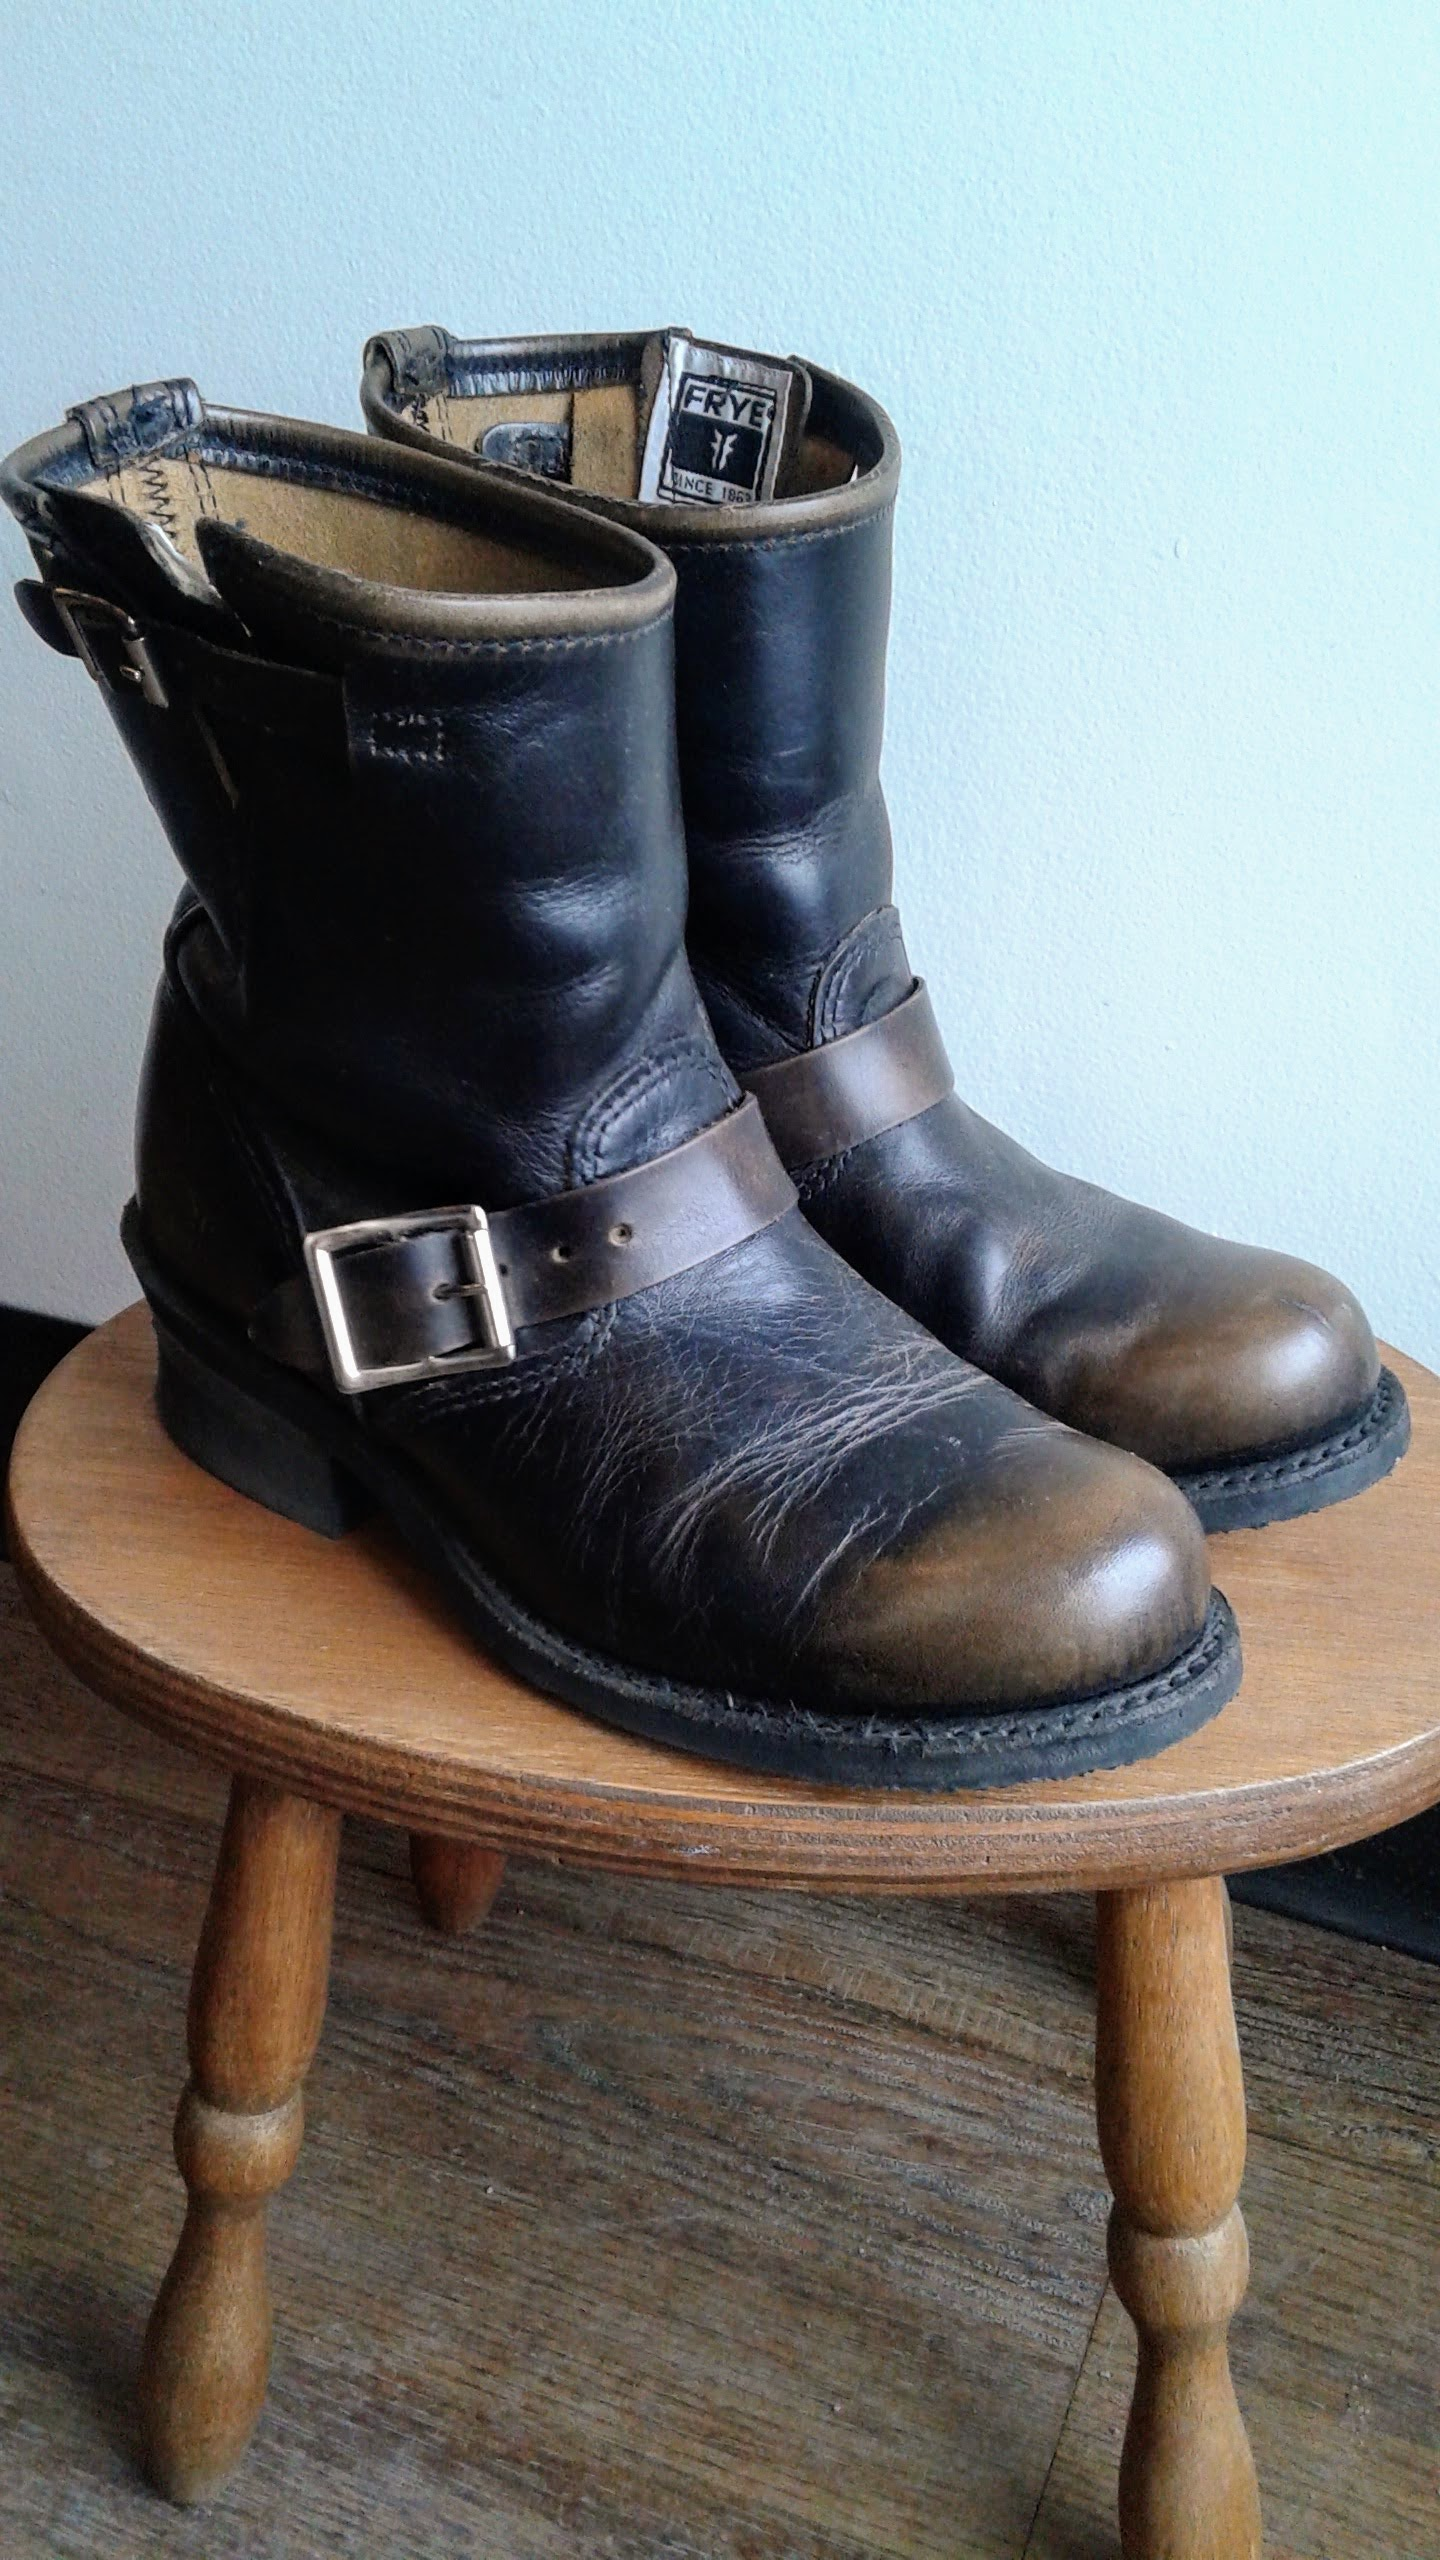 Frye boots; S6, $85